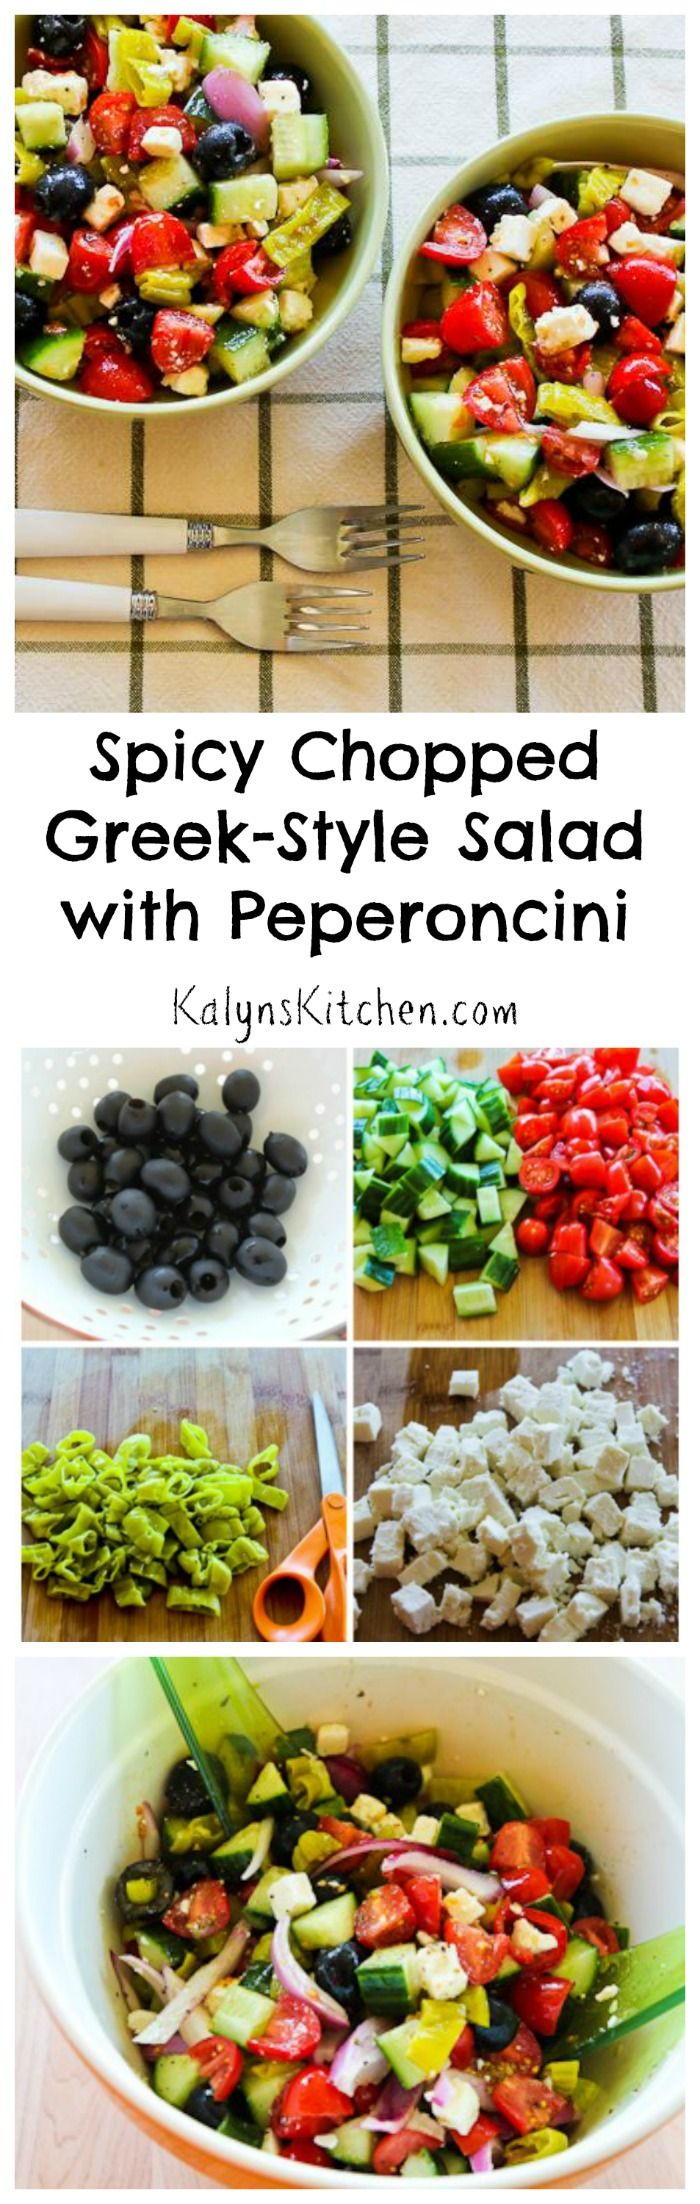 If you're looking for a perfect salad for summer holiday parties, this Spicy Chopped Greek-Style Salad with Peperoncini is always a hit.  People ask me for the recipe whenever I take this to a pot-luck!  #LowCarb #GlutenFree [from KalynsKitchen.com]